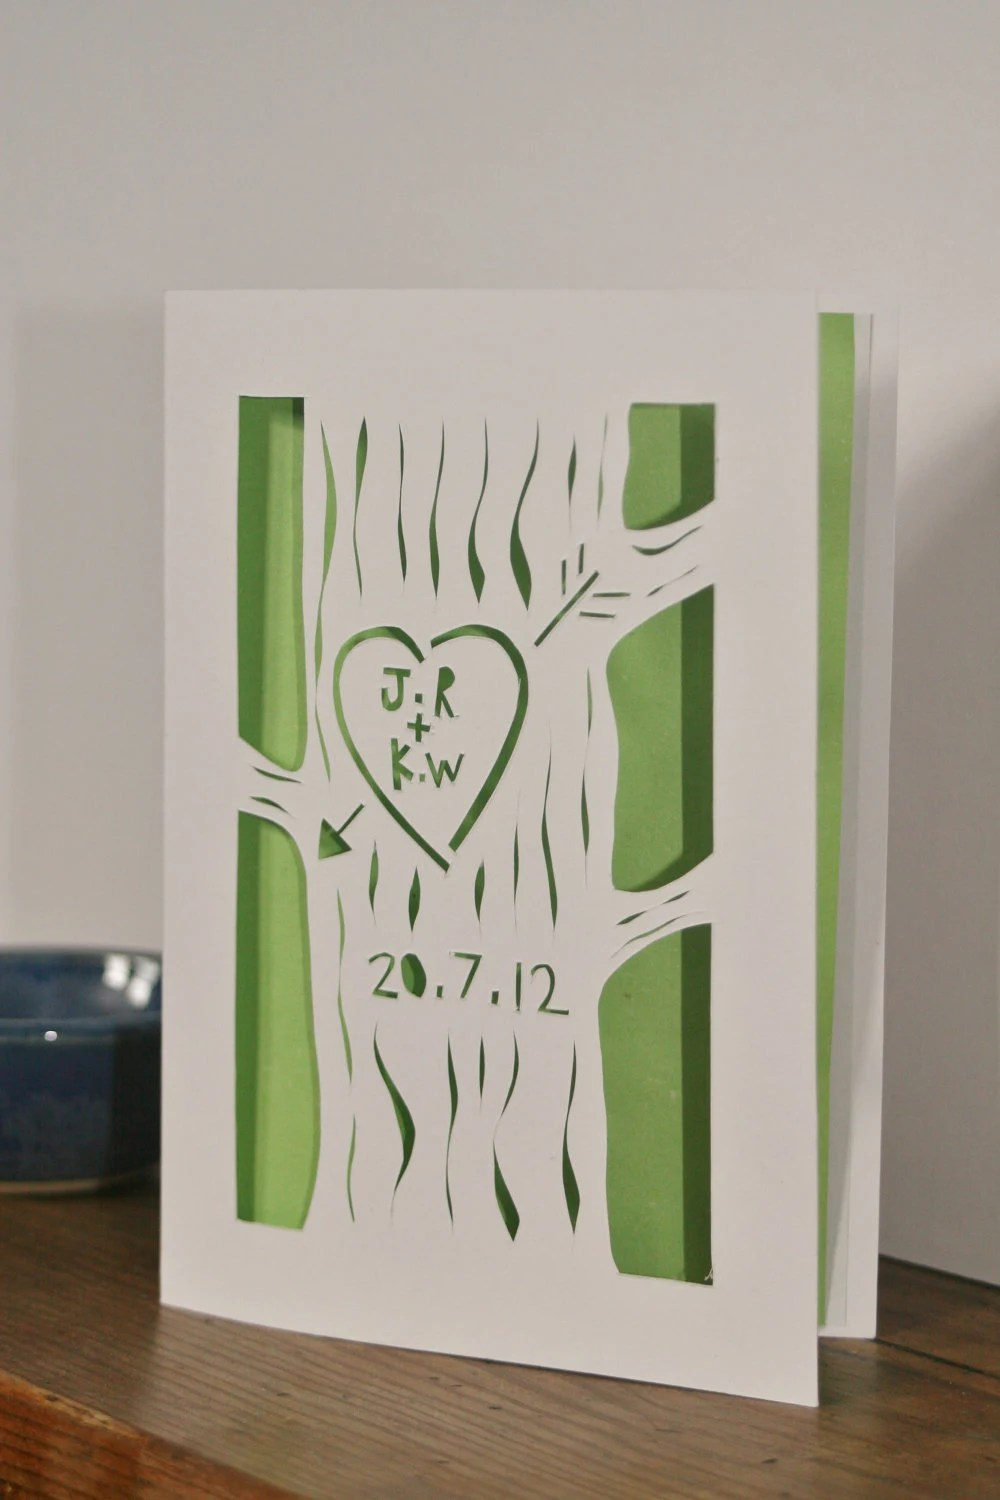 Deep in a wood carved on a tree - wedding congratulations card - CraftyLou2